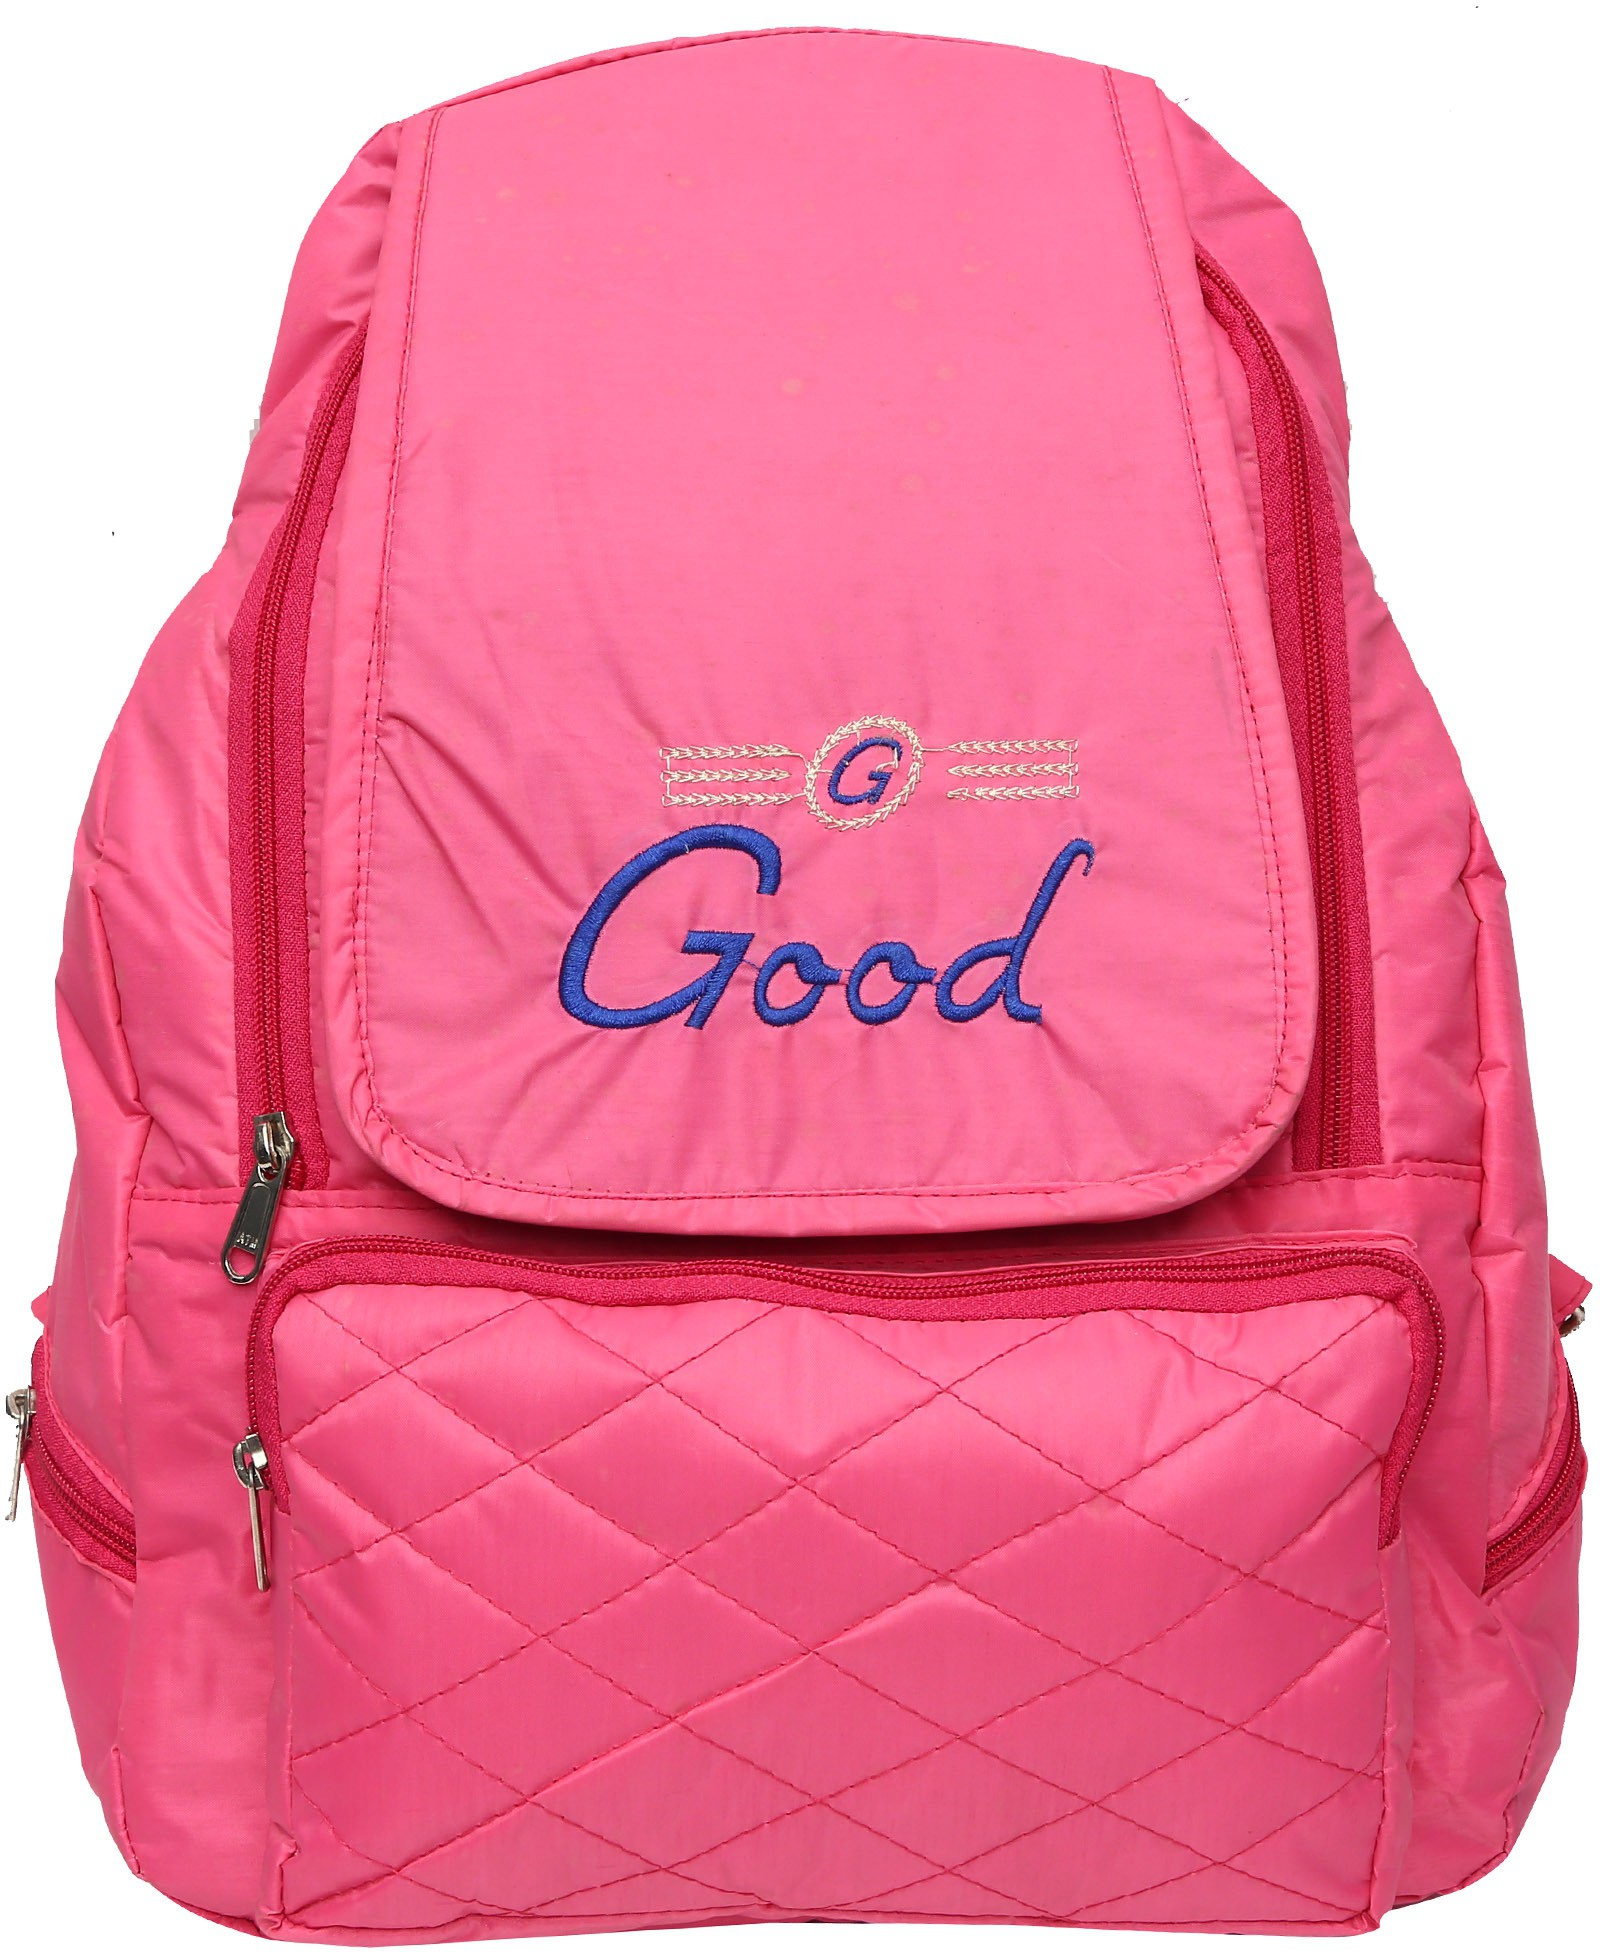 Vaishnovi 15.6 inch Laptop Backpack(Pink)